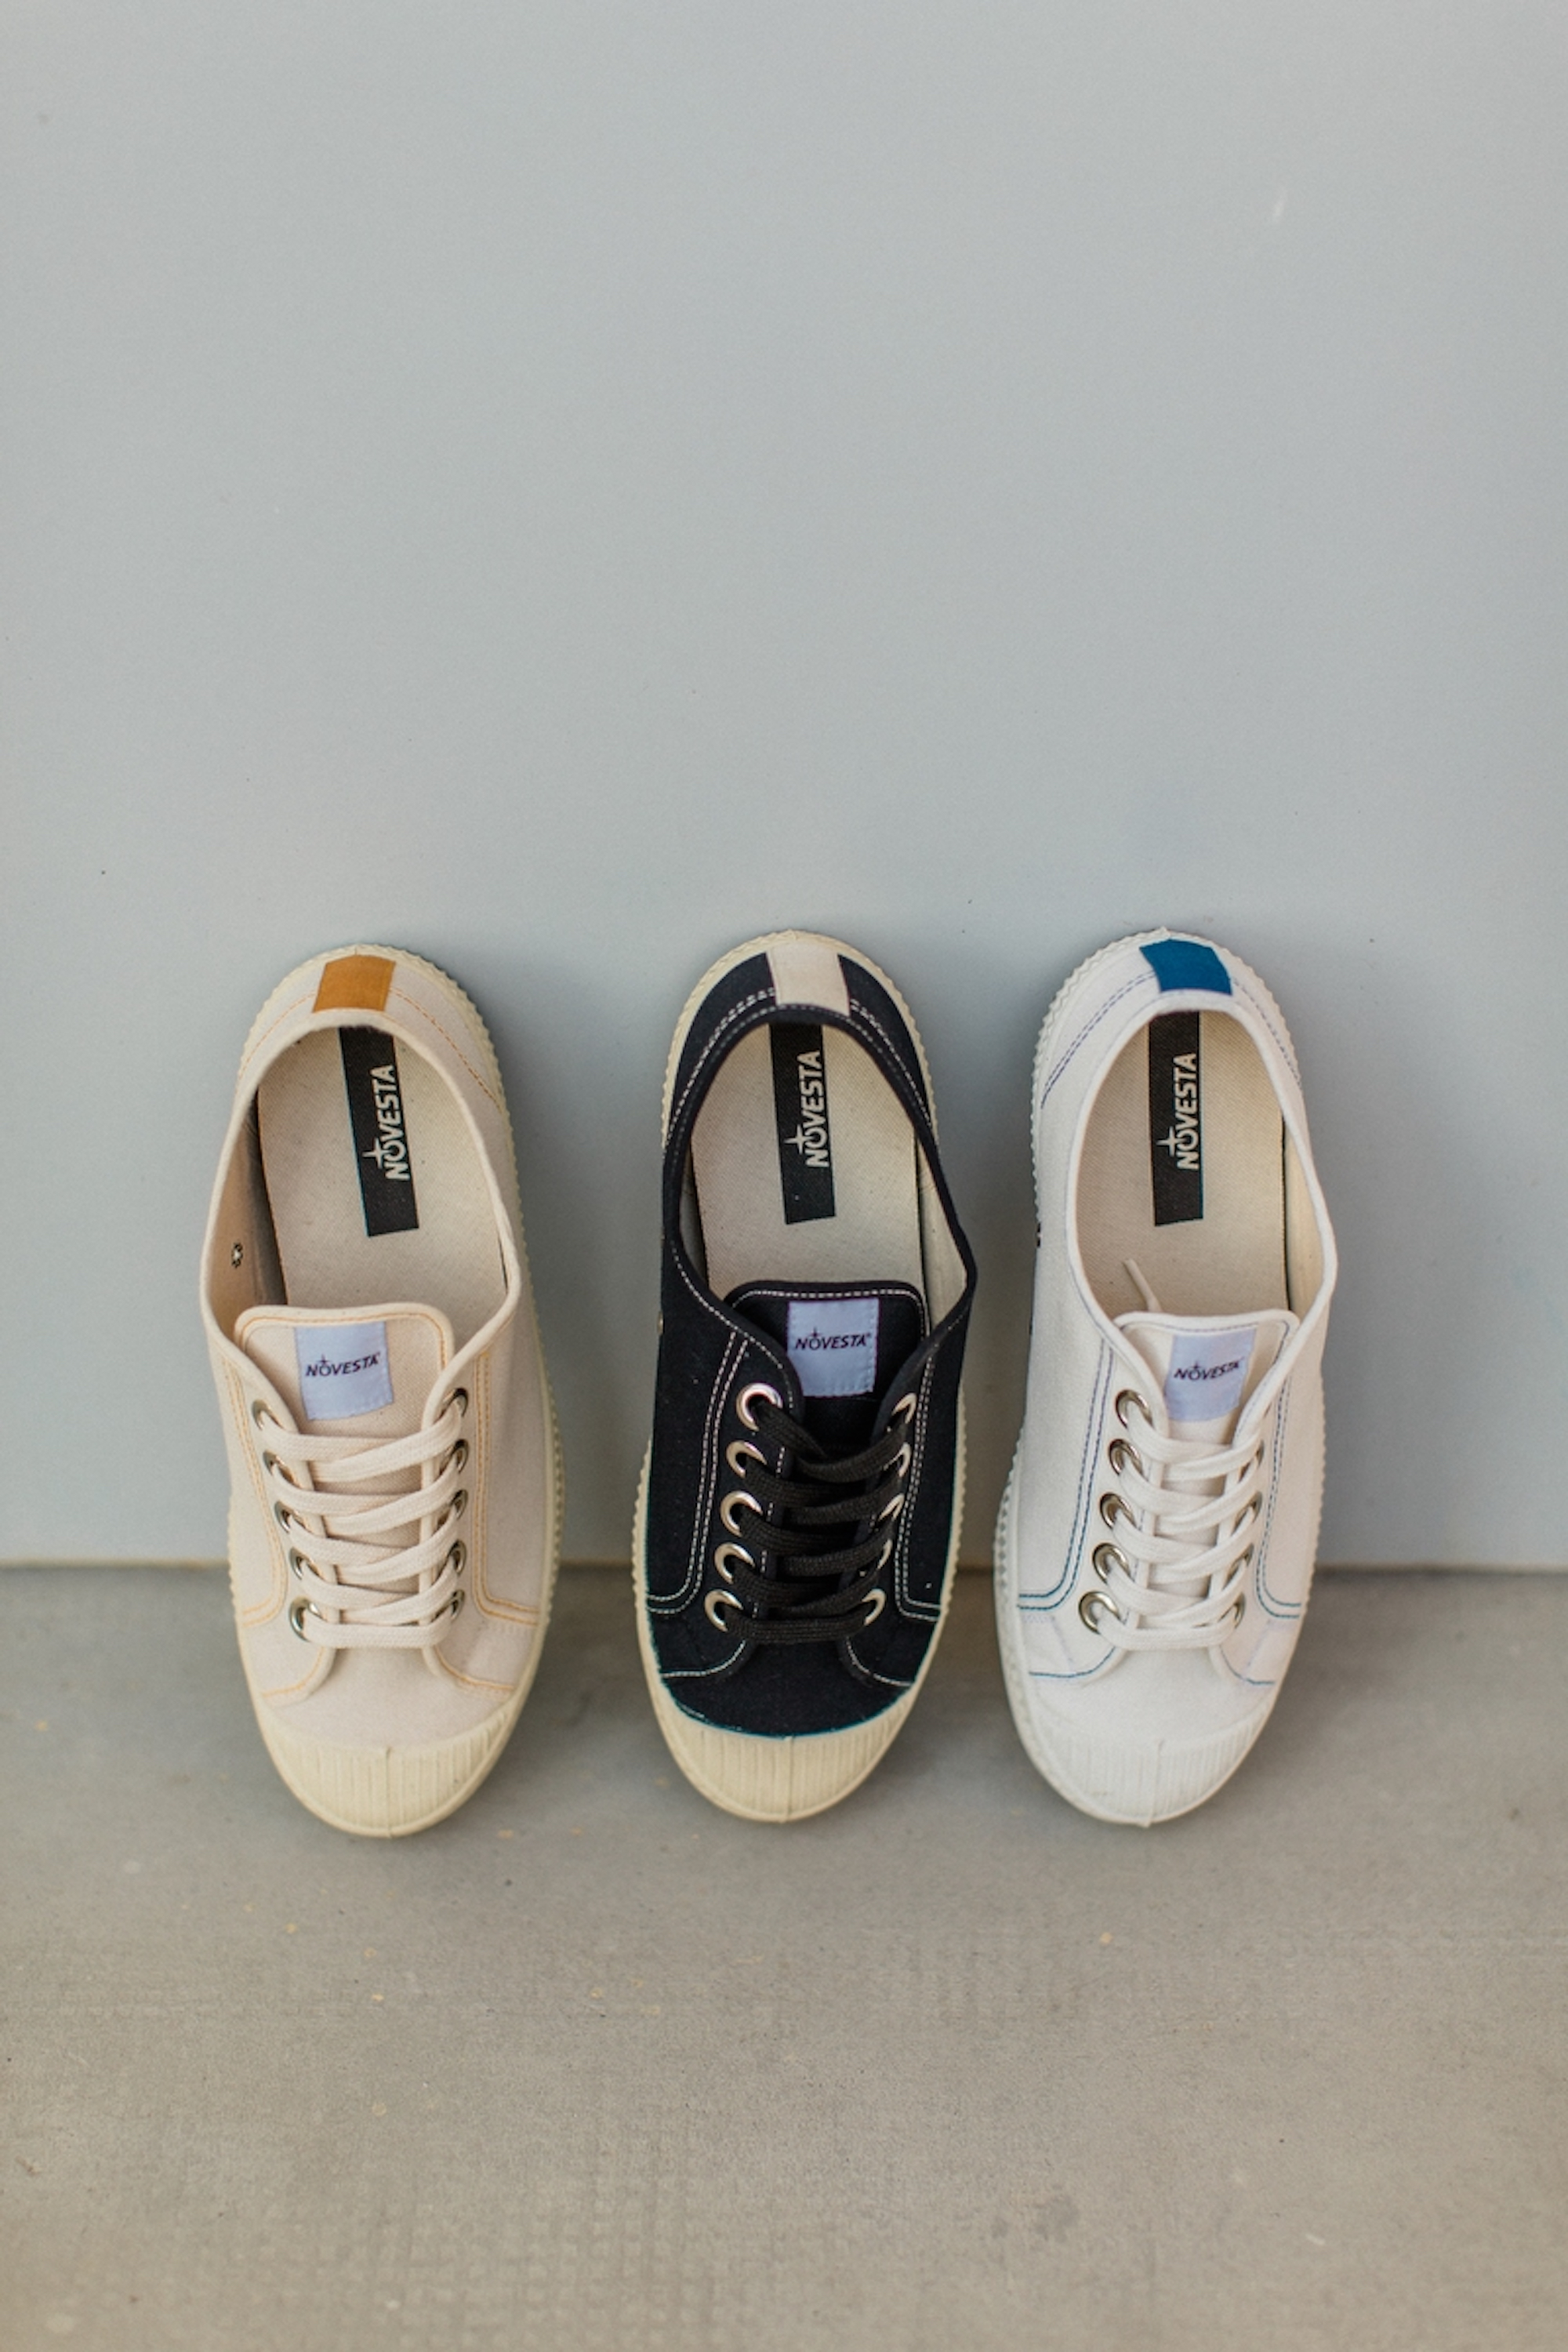 Novesta ss21 collection three shoes